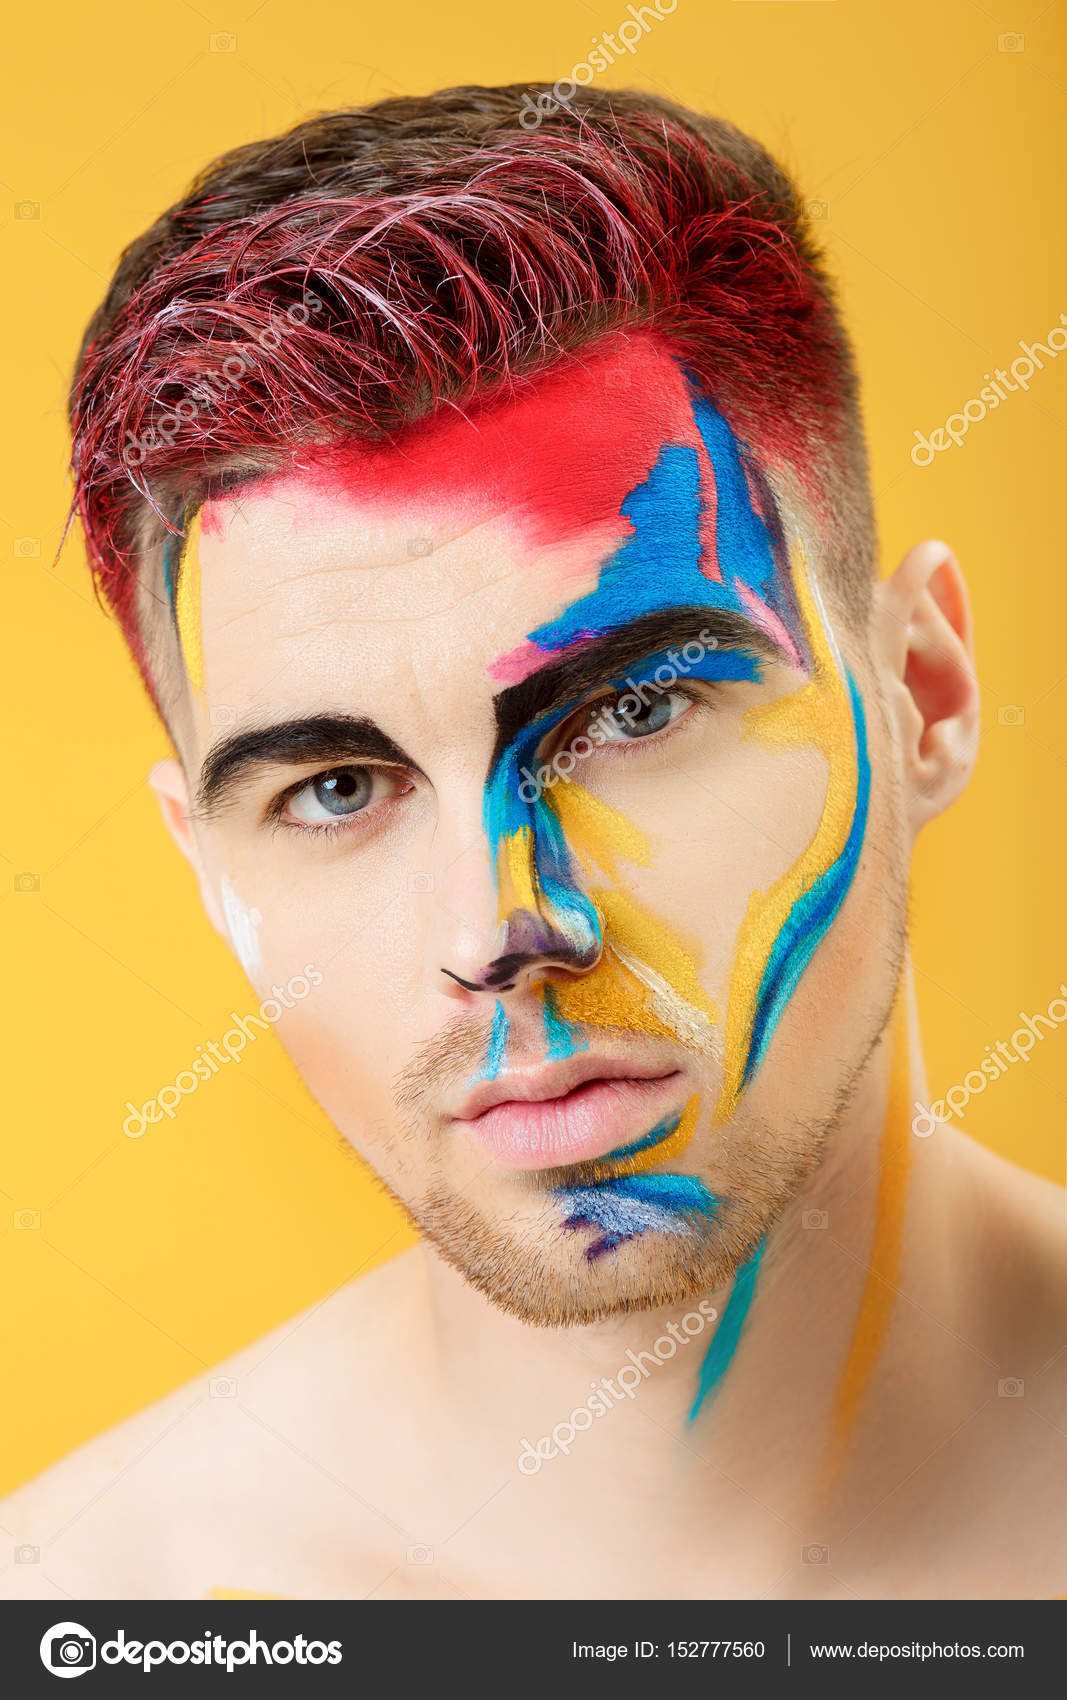 Fashion Male Portrait With Face Painting